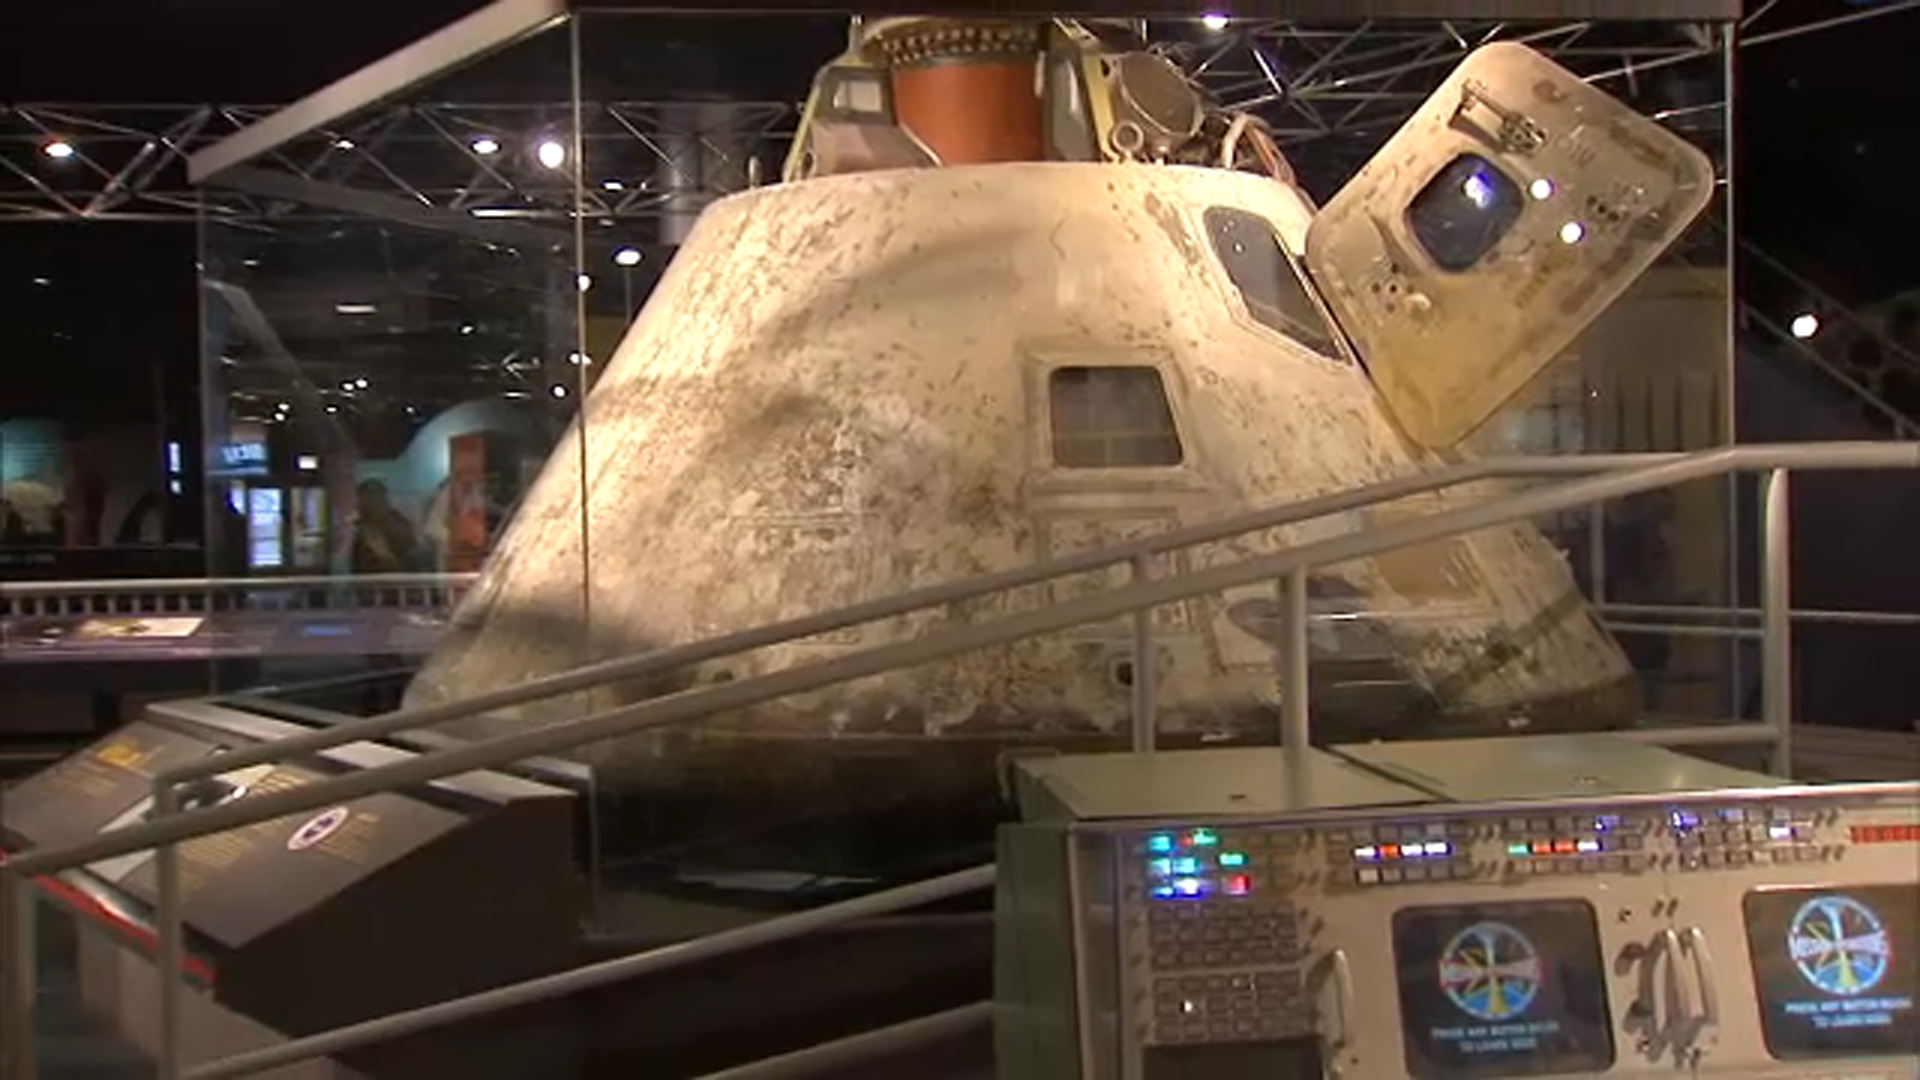 Fifty years ago, Apollo 8 astronauts became the first humans to orbit the moon. Now, a new interactive experience at the Museum of Science and Industry takes visitors back in time.